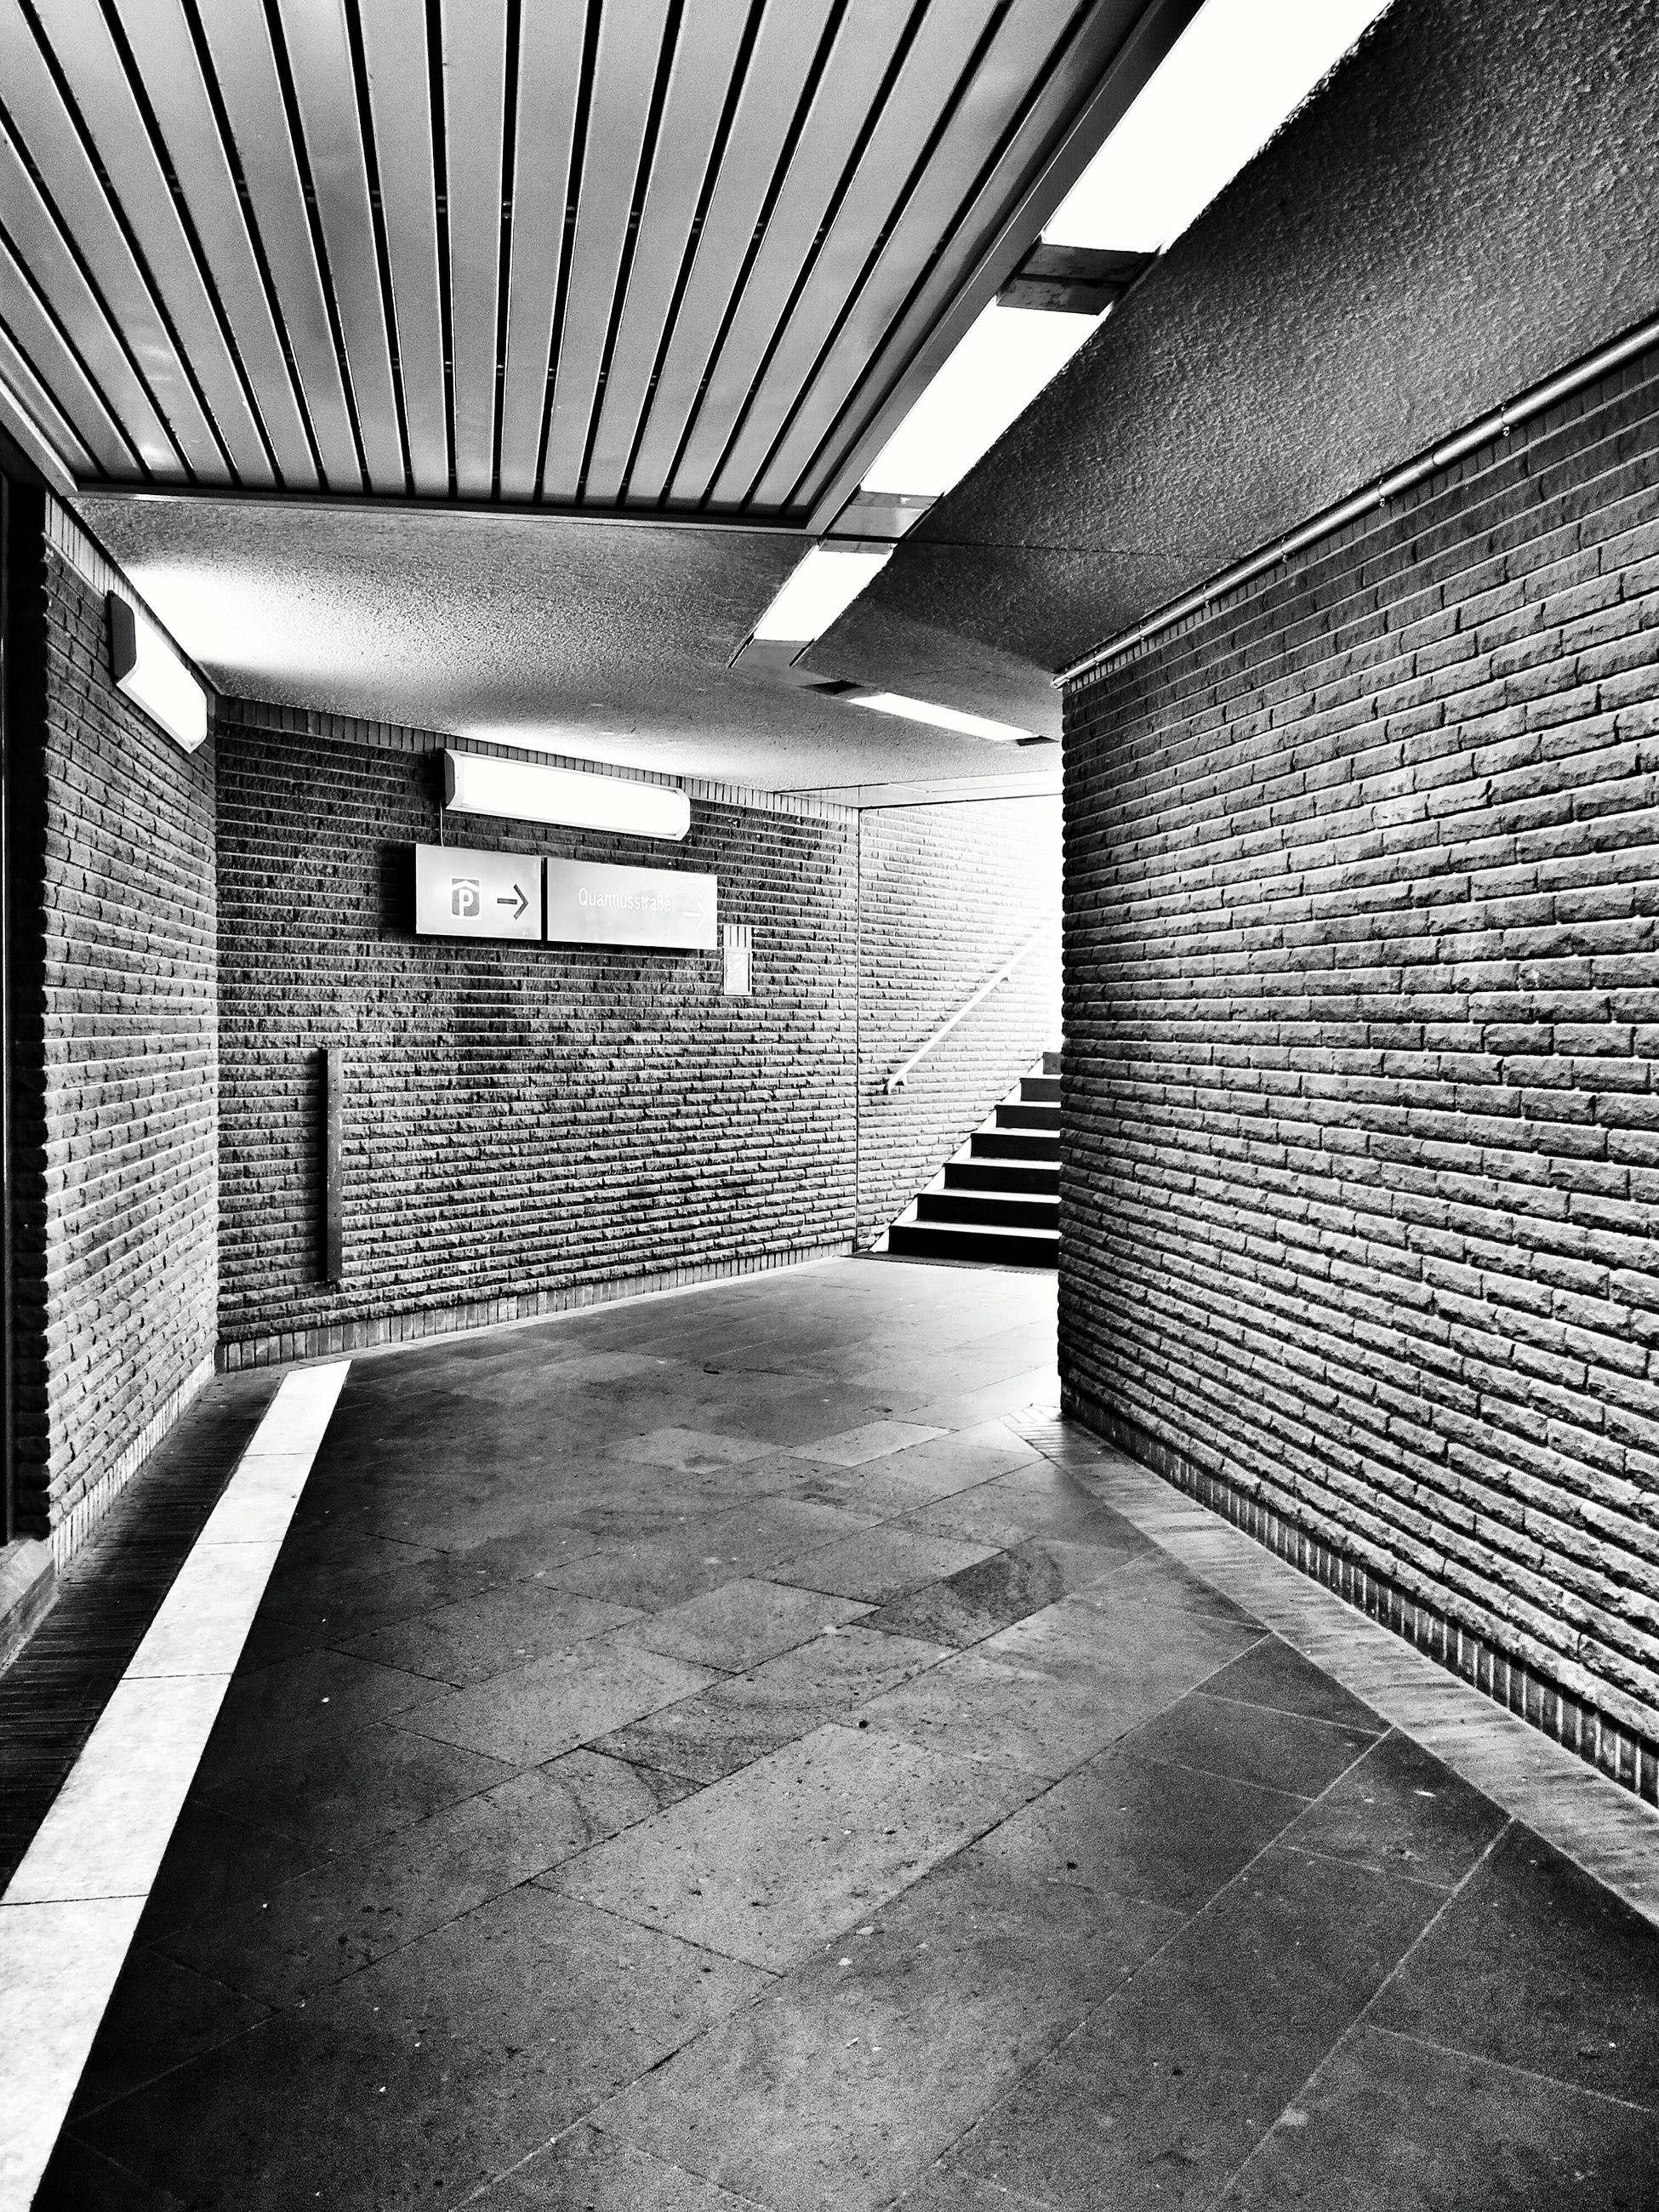 architecture, built structure, indoors, the way forward, empty, building exterior, ceiling, flooring, diminishing perspective, wall - building feature, sunlight, building, day, no people, absence, walkway, tiled floor, in a row, corridor, shadow